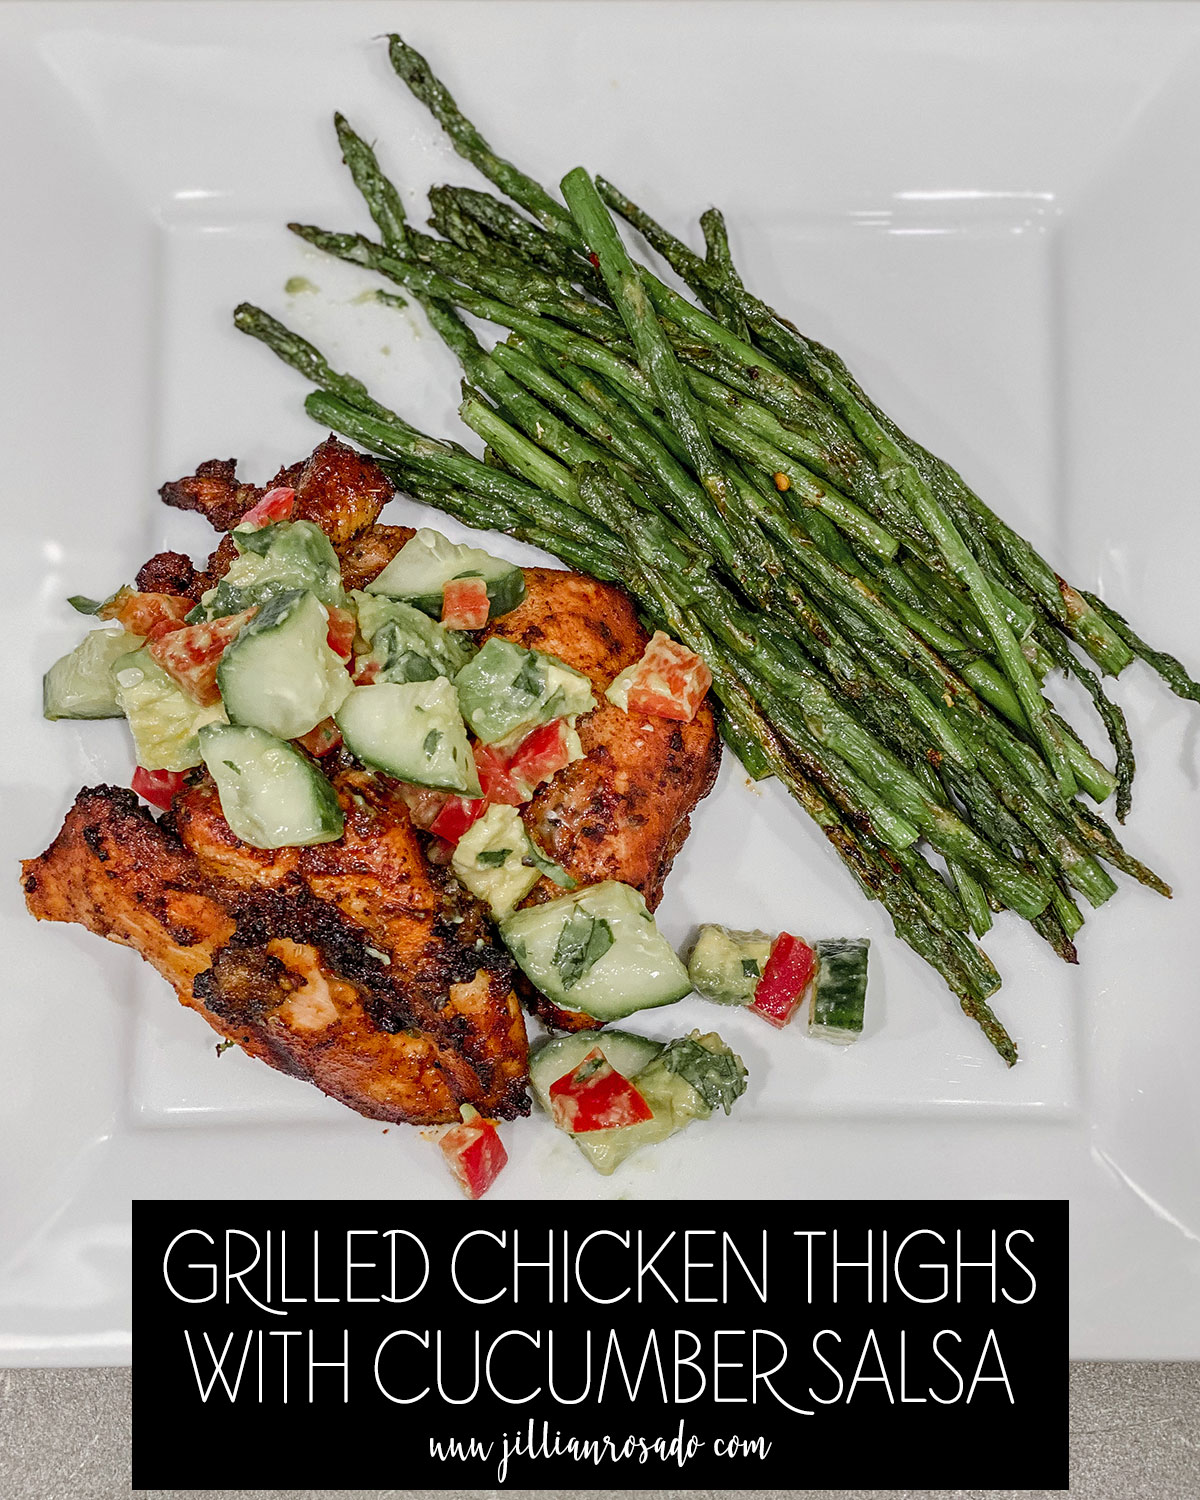 Grilled Chicken Thighs with Cucumber Salsa